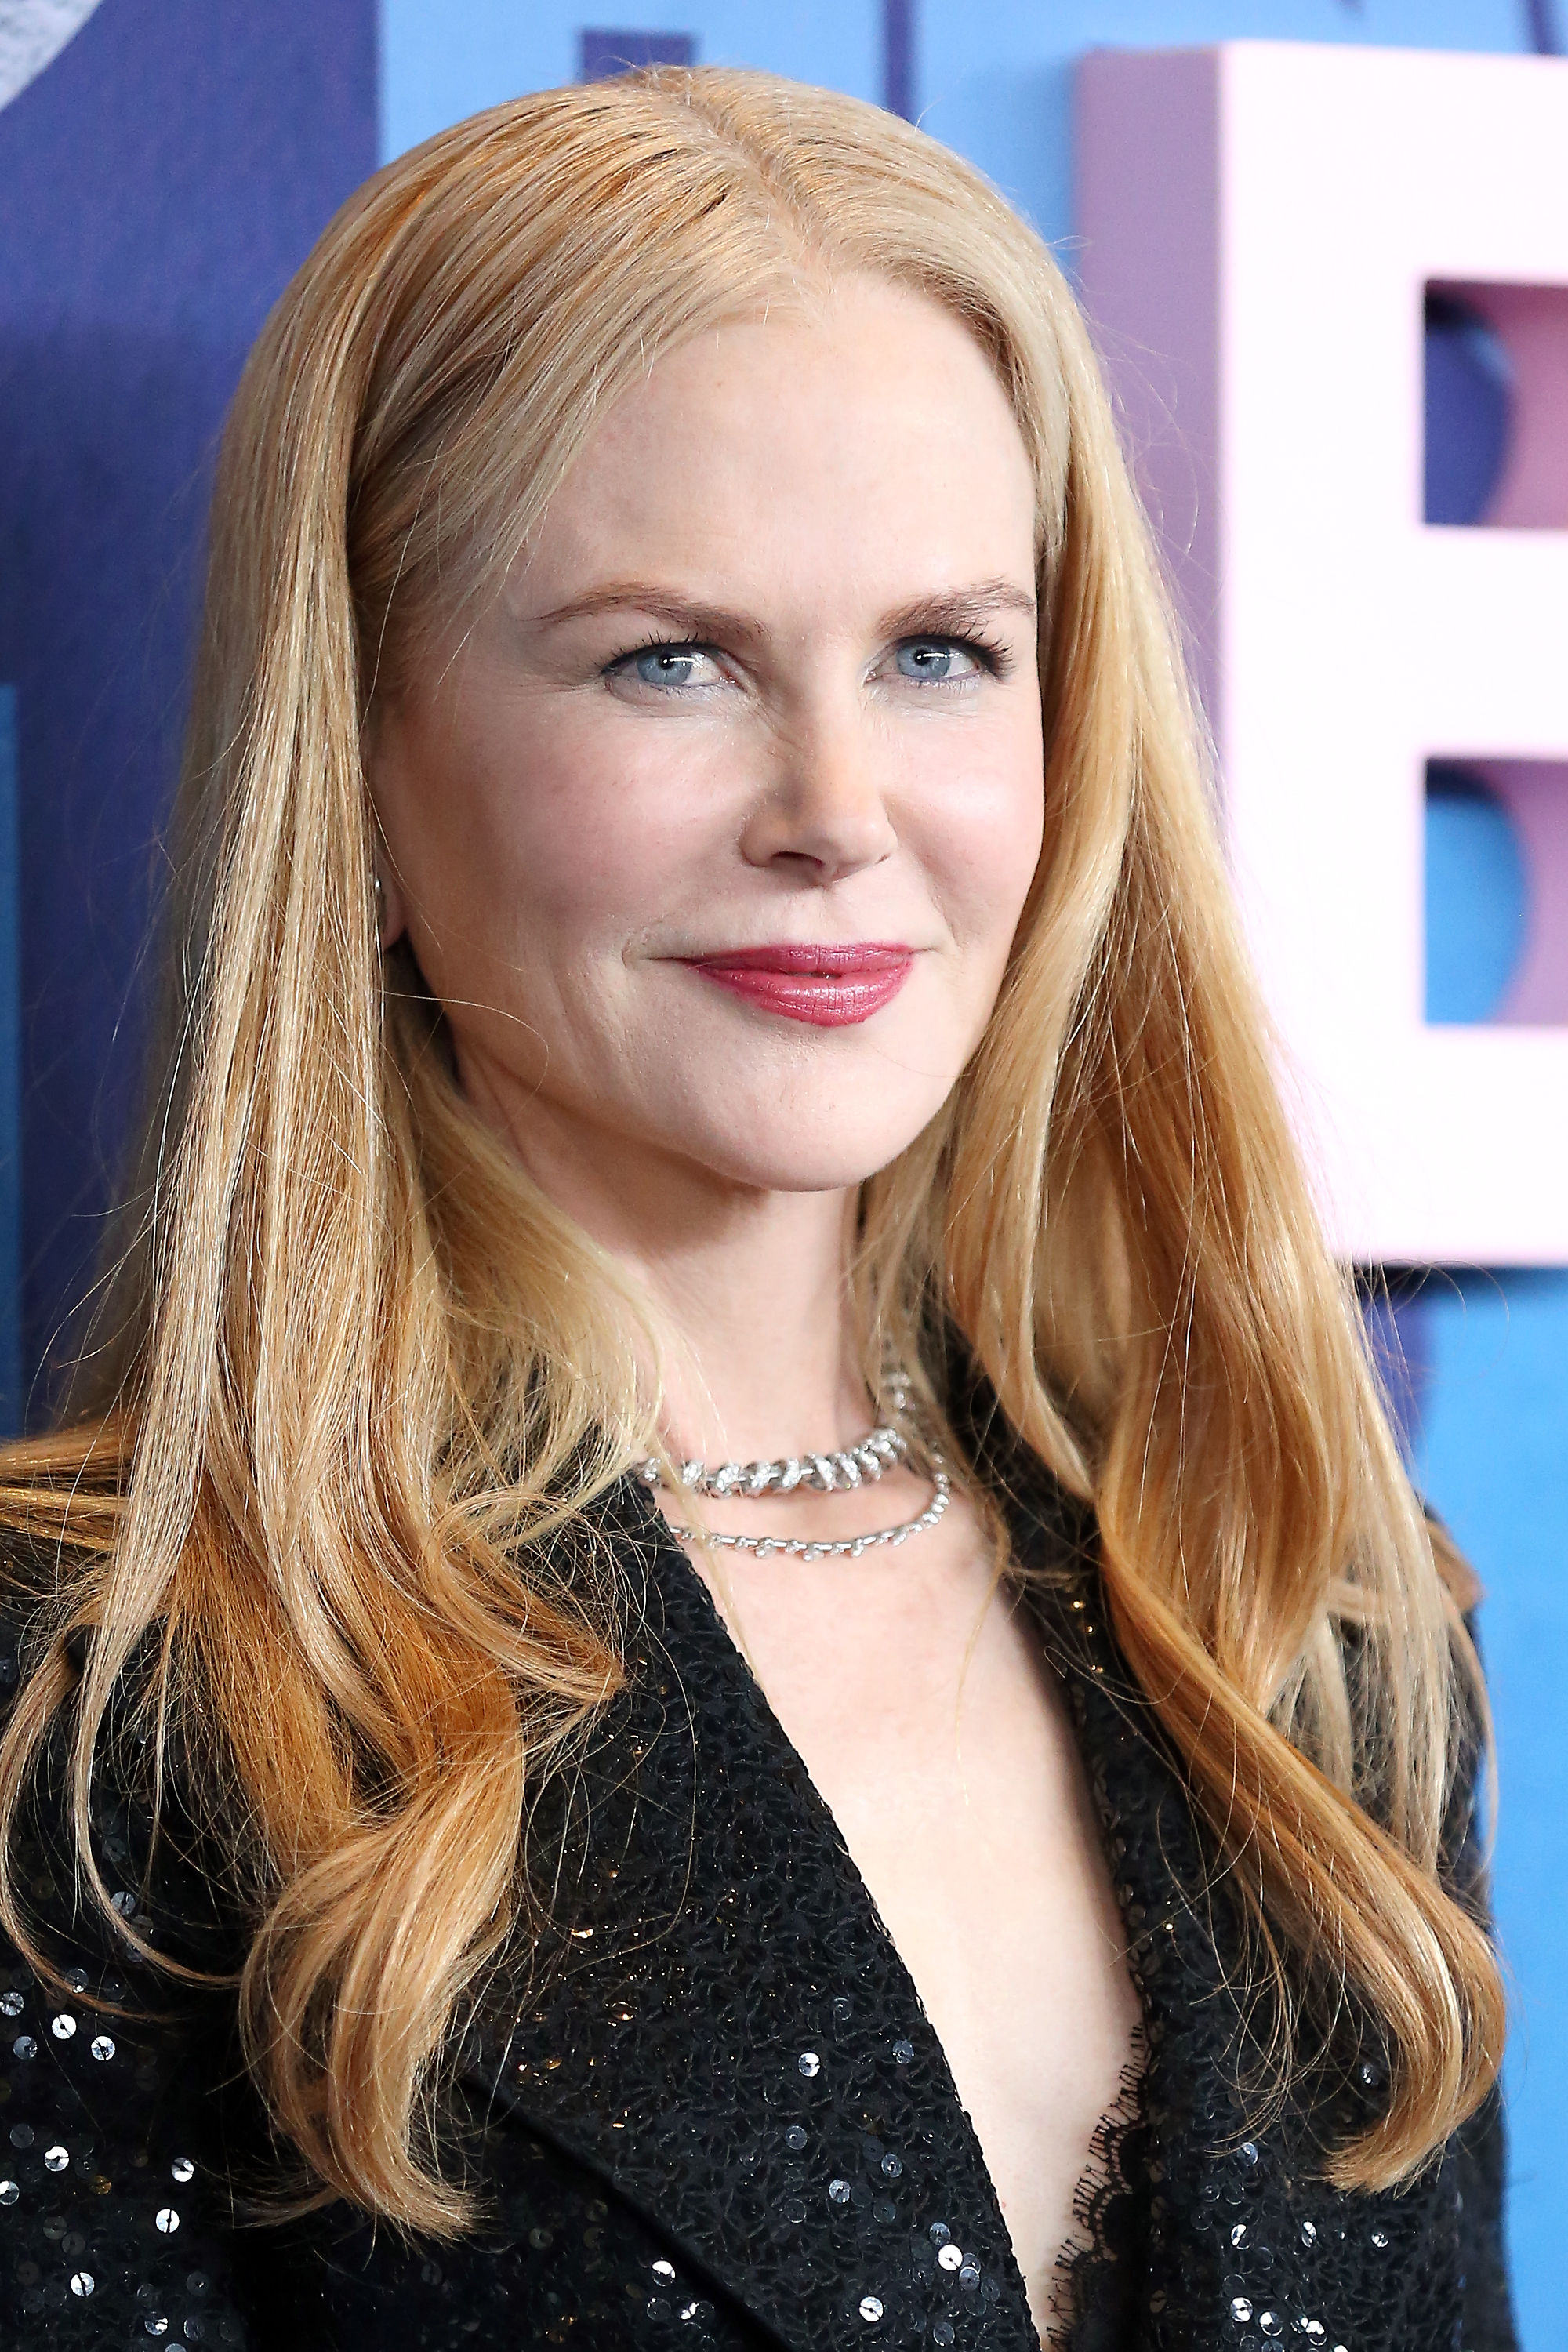 This $8 Blush Is Nicole Kidman's Absolute Favorite